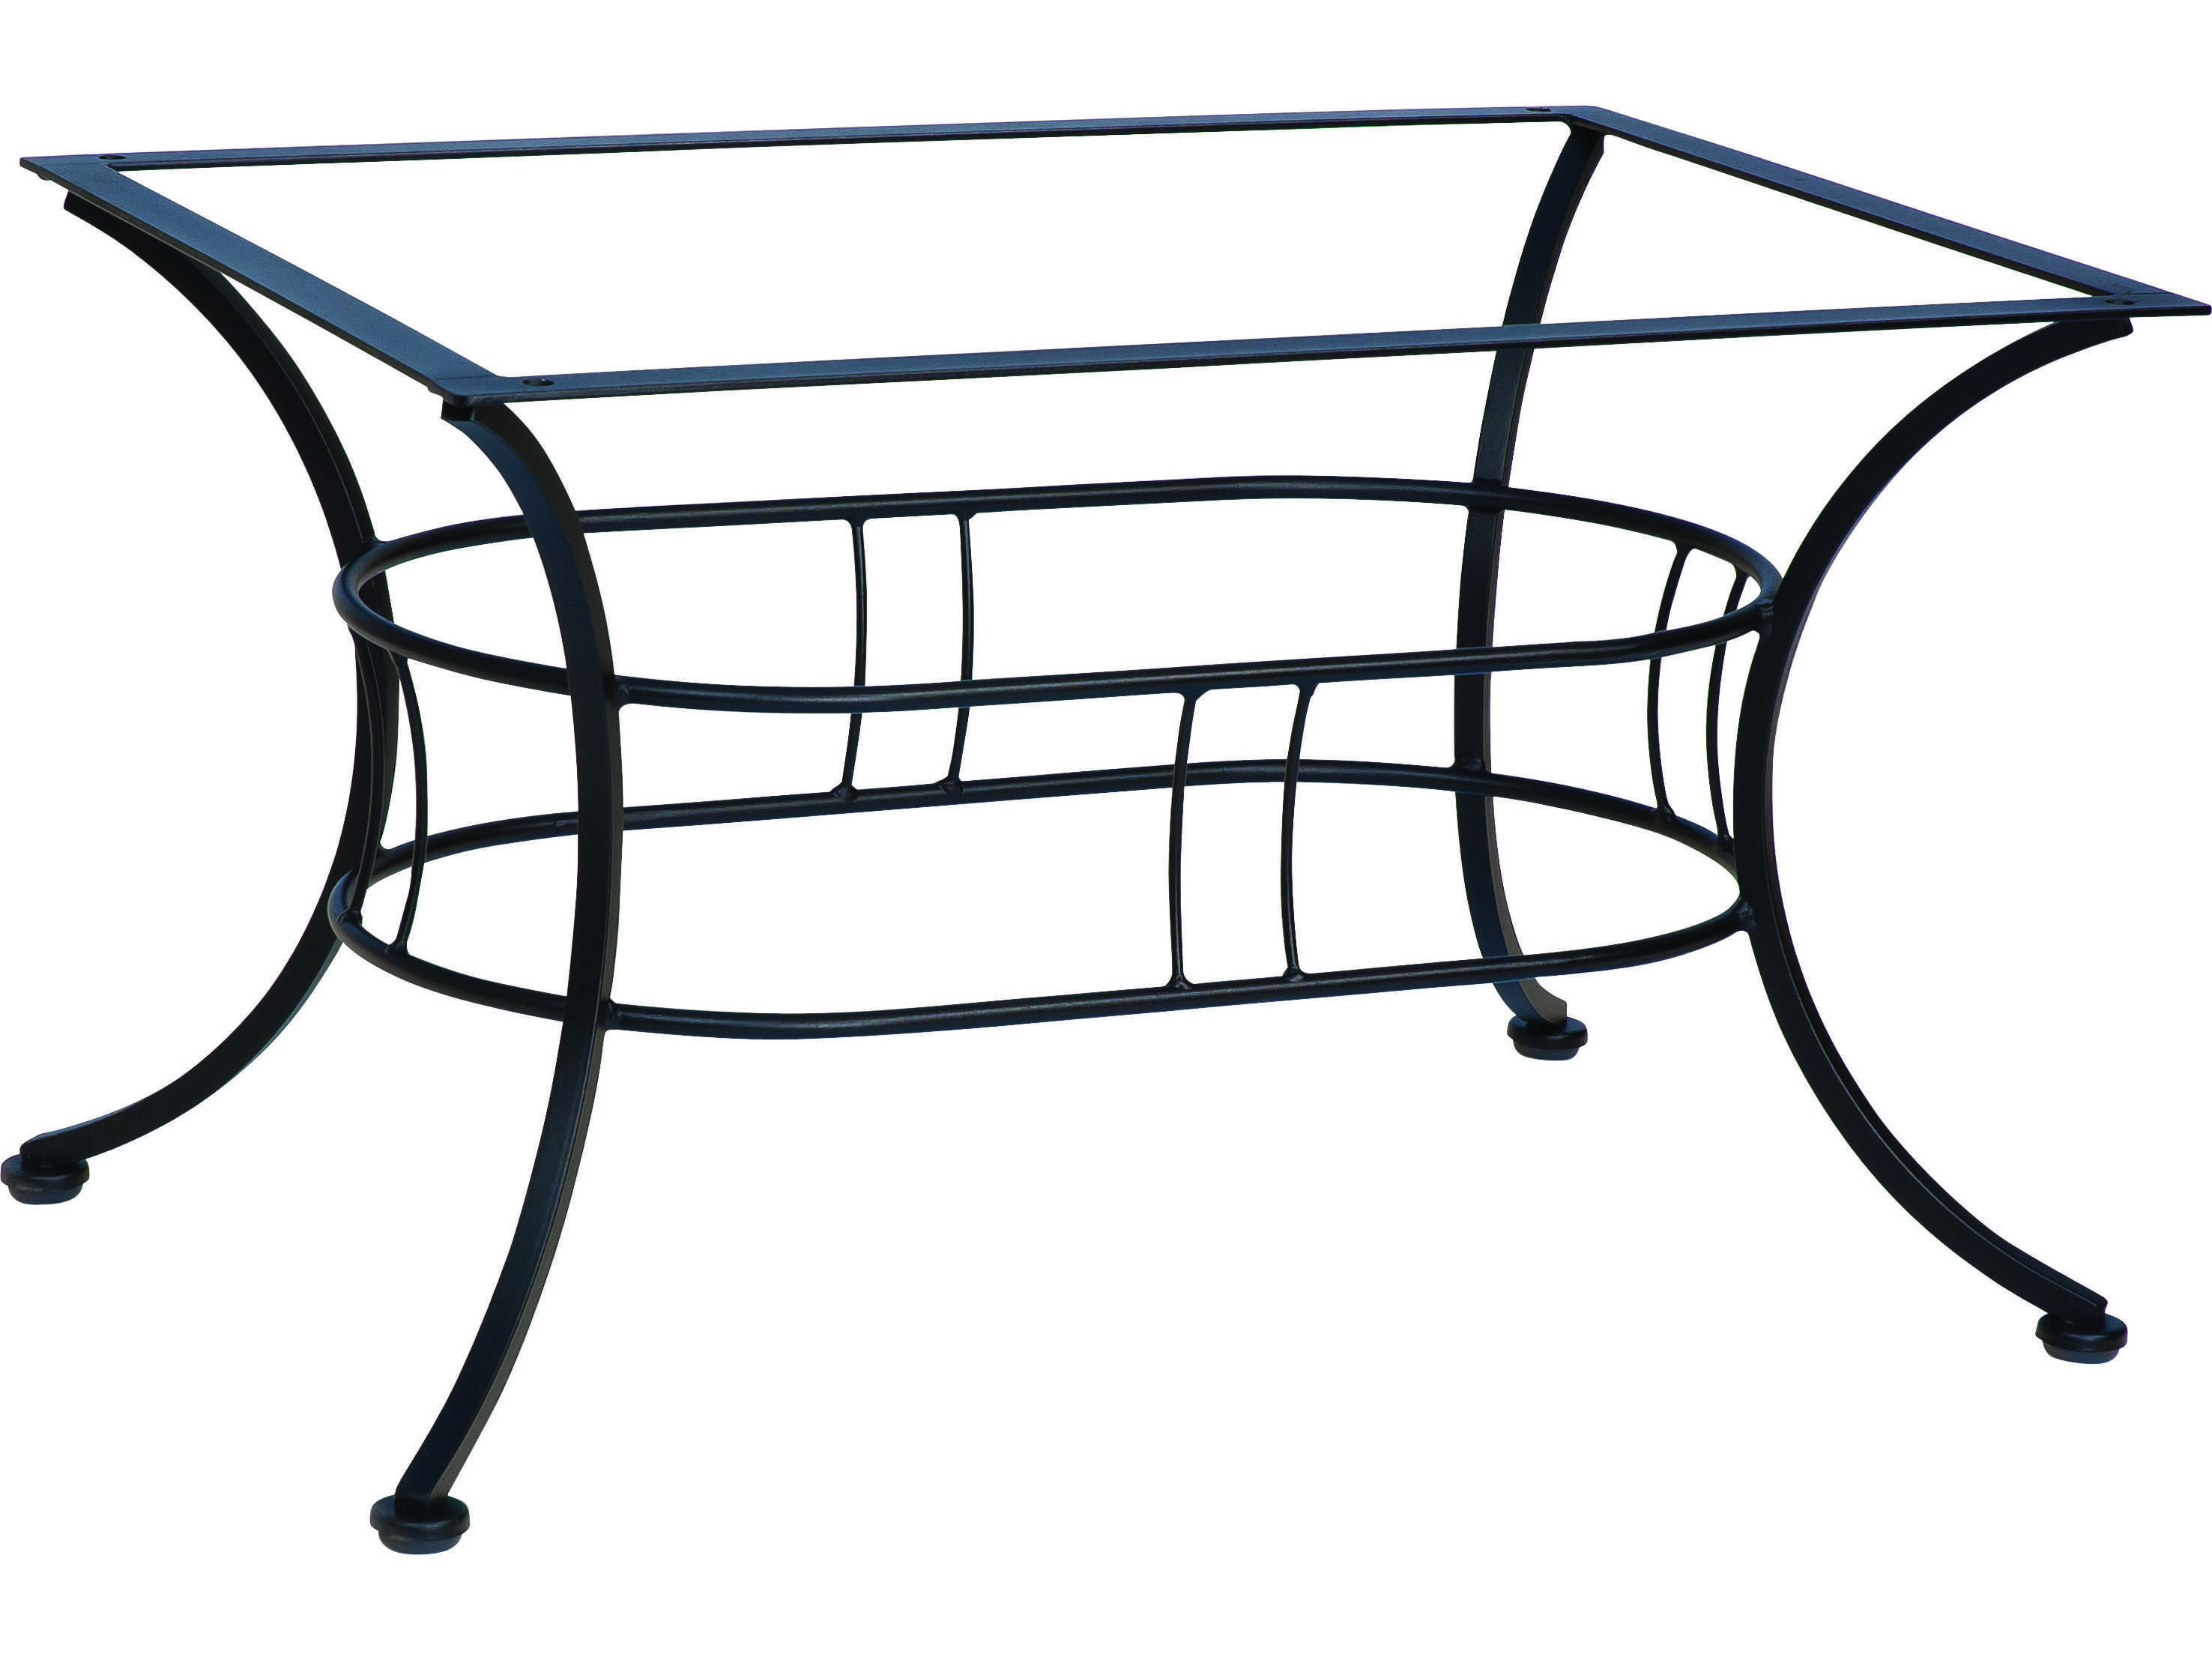 Woodard Easton Wrought Iron Coffee Table Base 1n4500